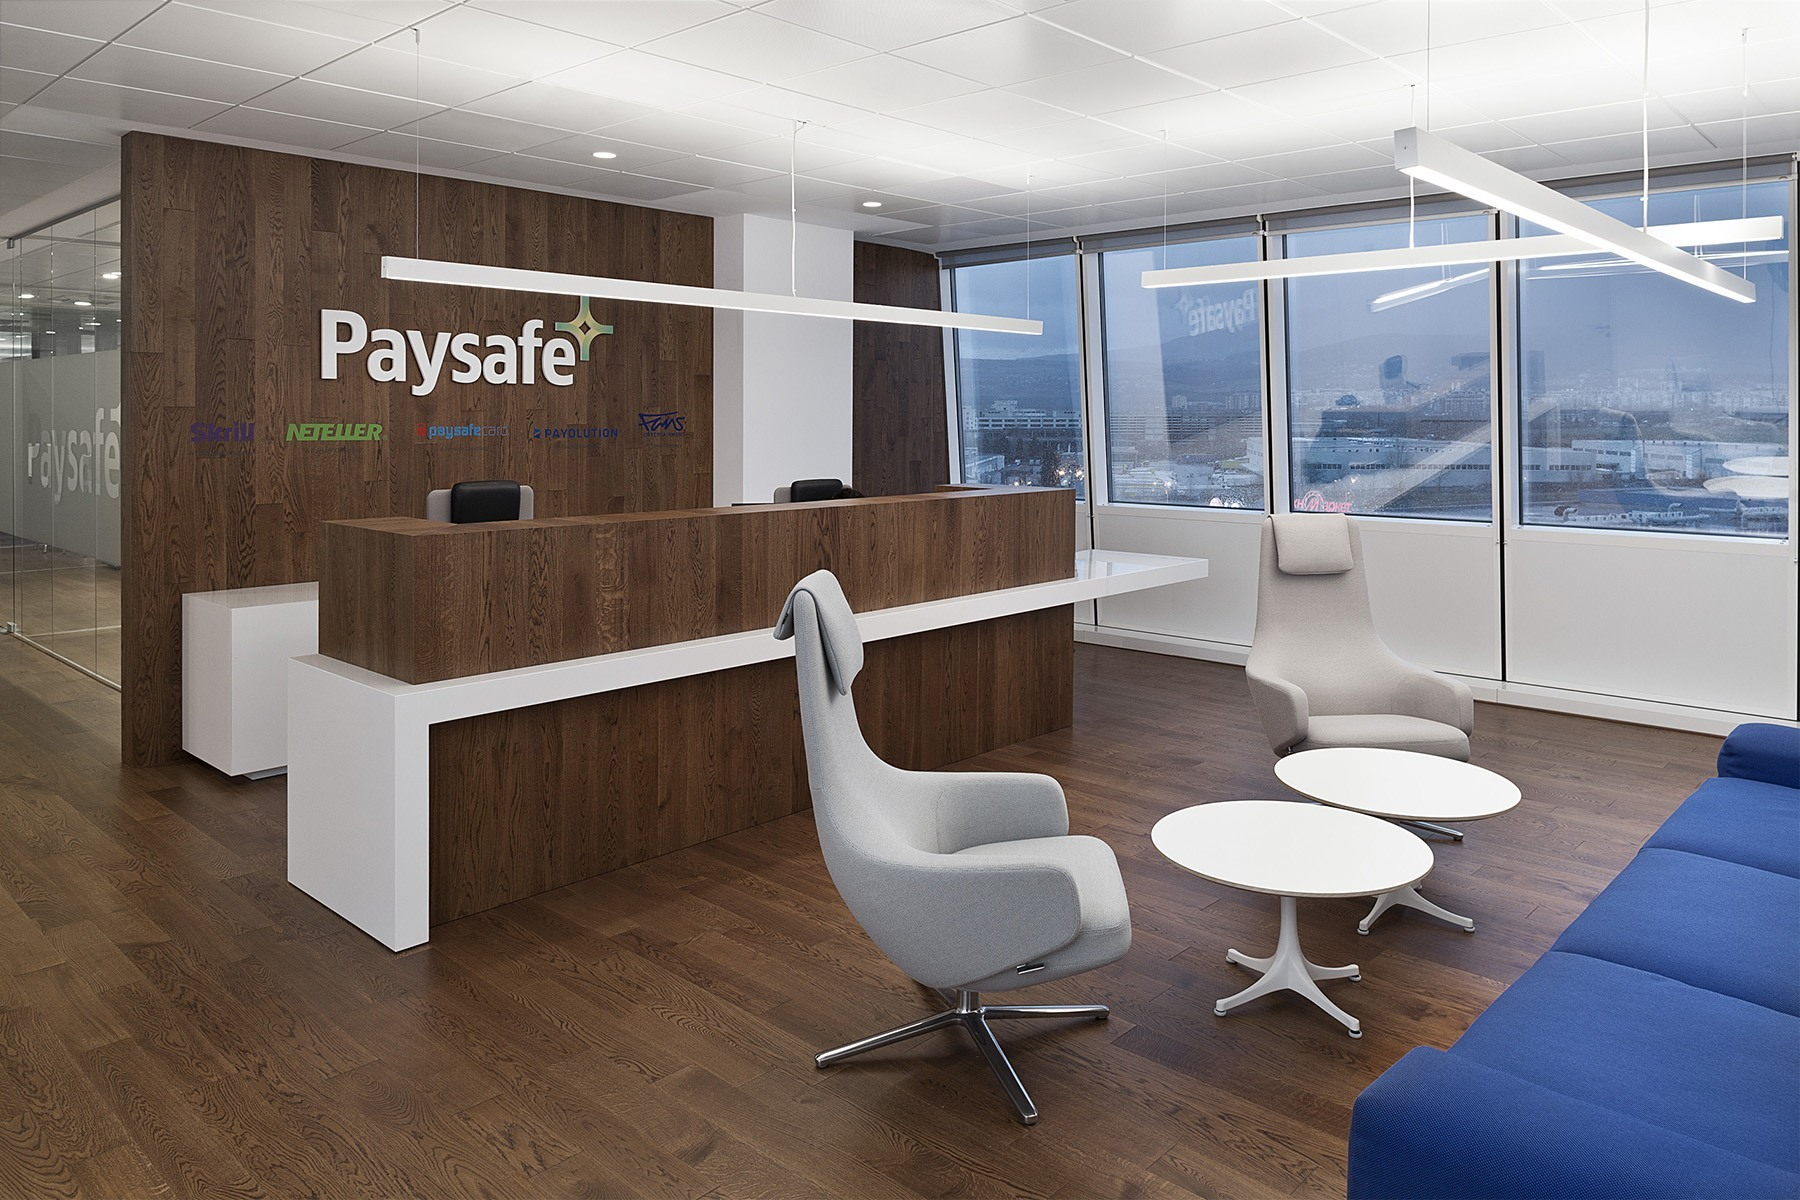 paysafe-sofia-office-1